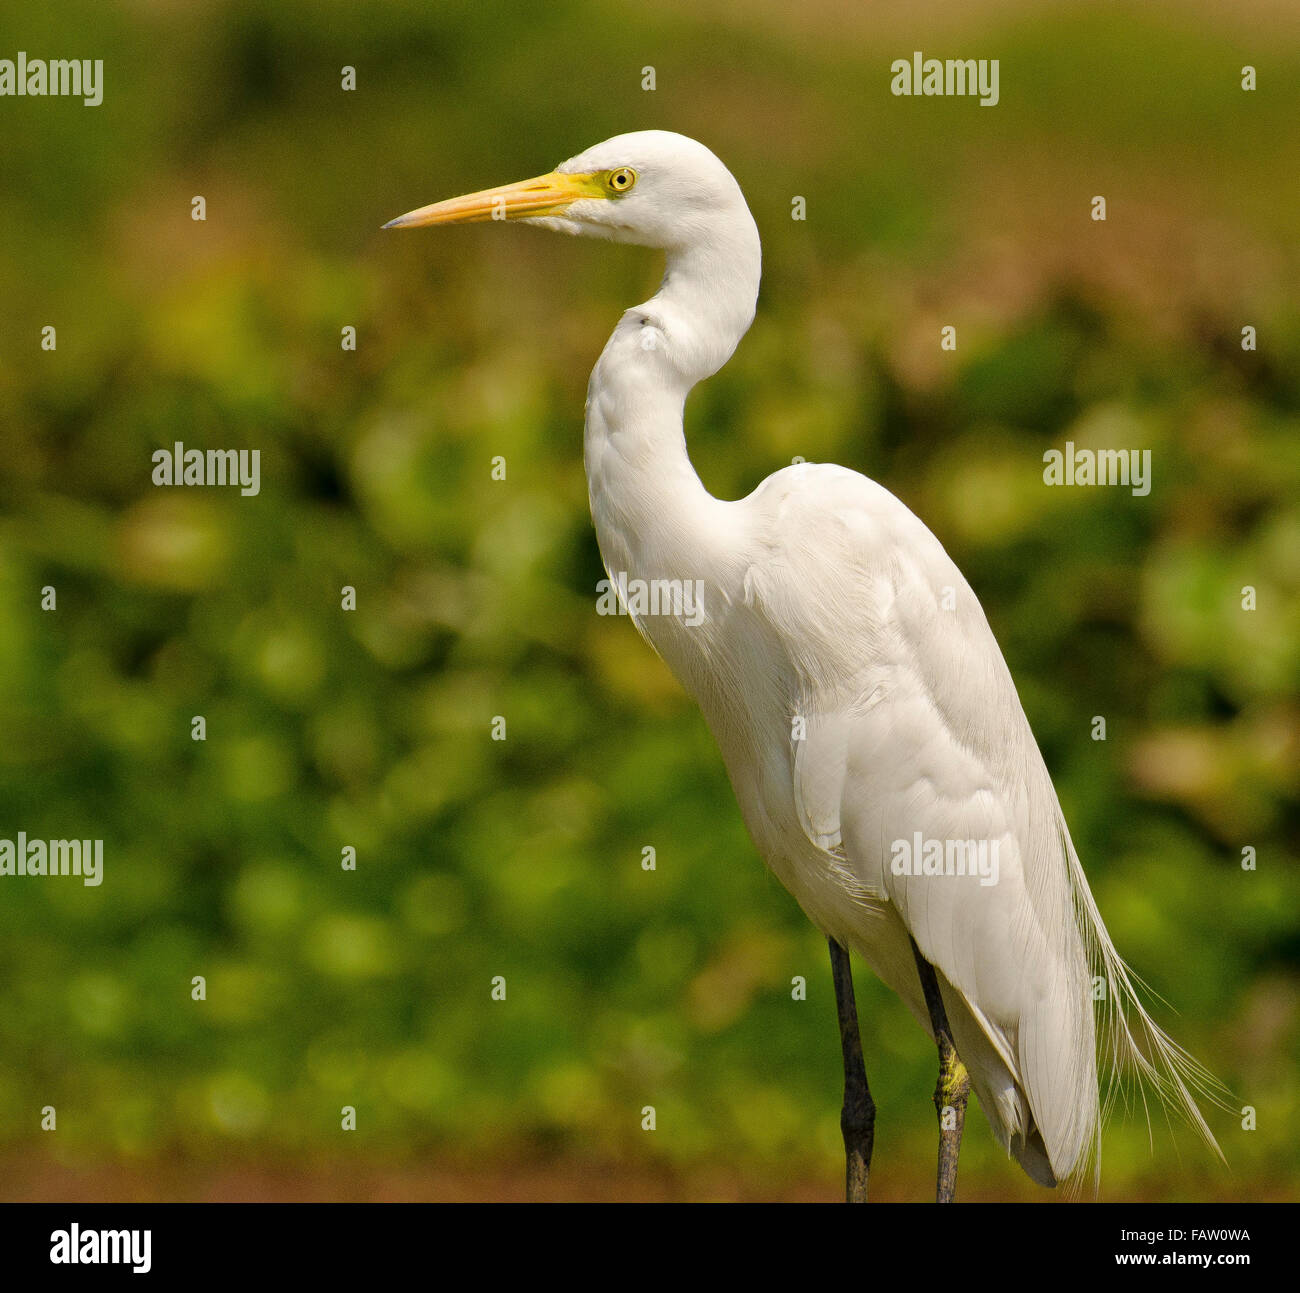 White Bird In Green Background With Yellow Eyes And Beak Stock Photo